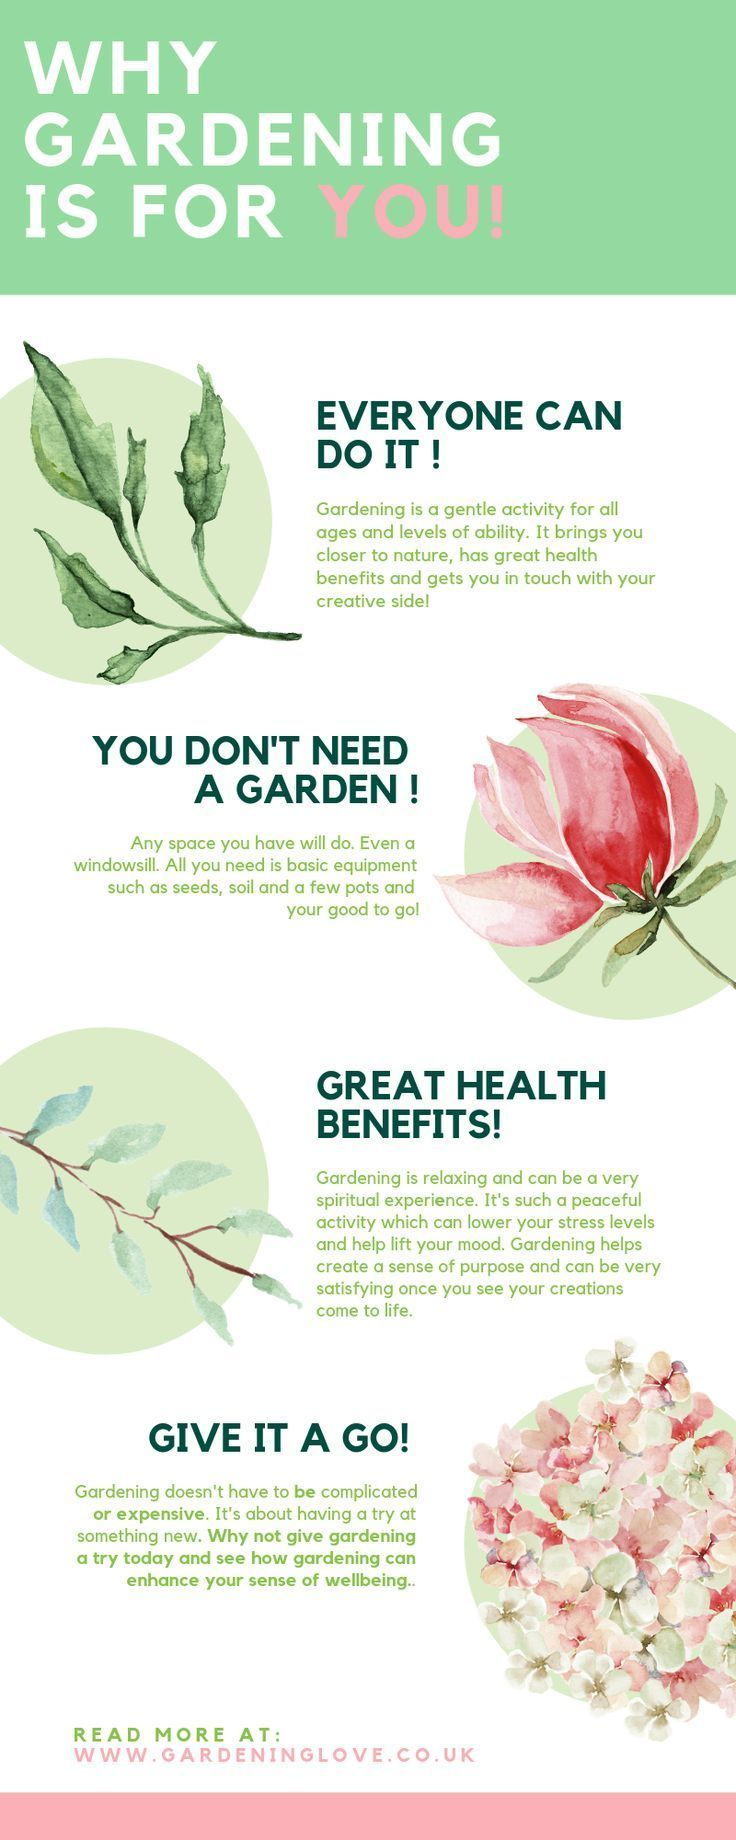 Gardening is for everyone! All ages and abilities will benefit from gardening ac...